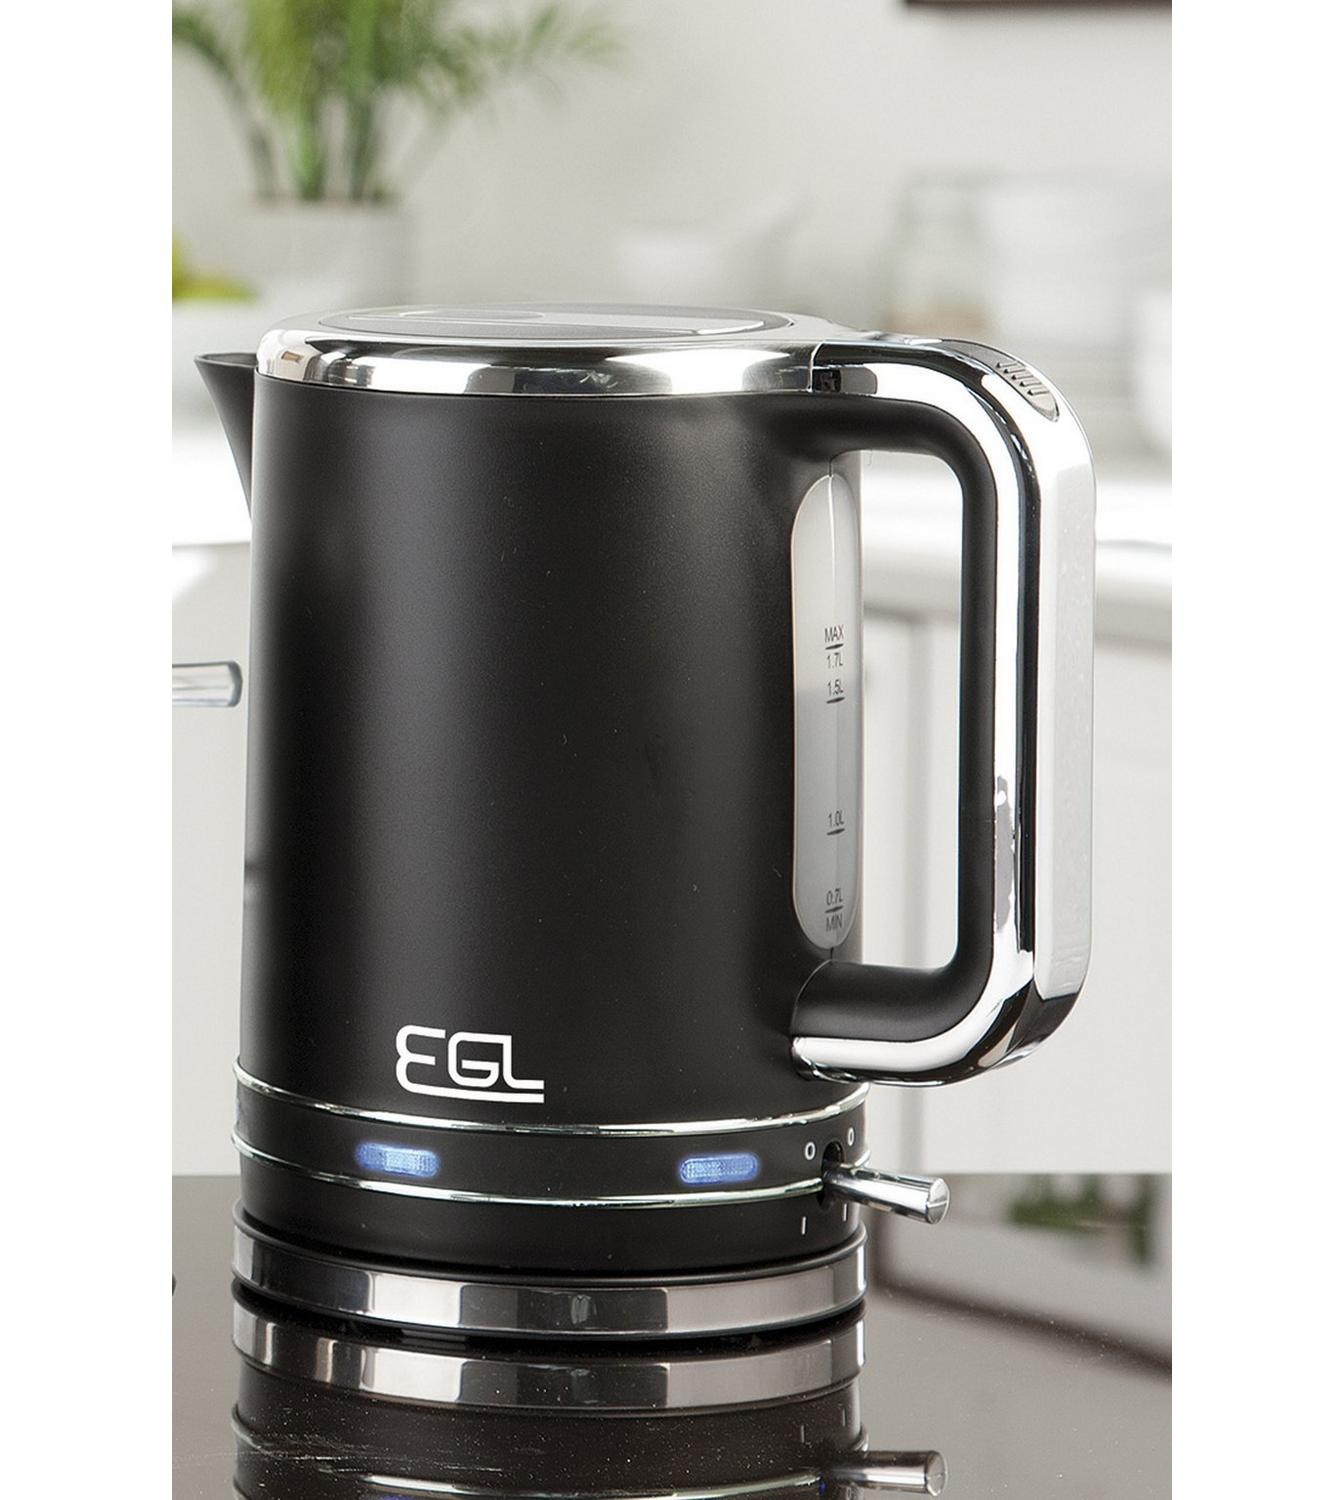 How To Use Coffee Maker Kettle : EGL Toaster Kettle and Filter Coffee Maker eBay